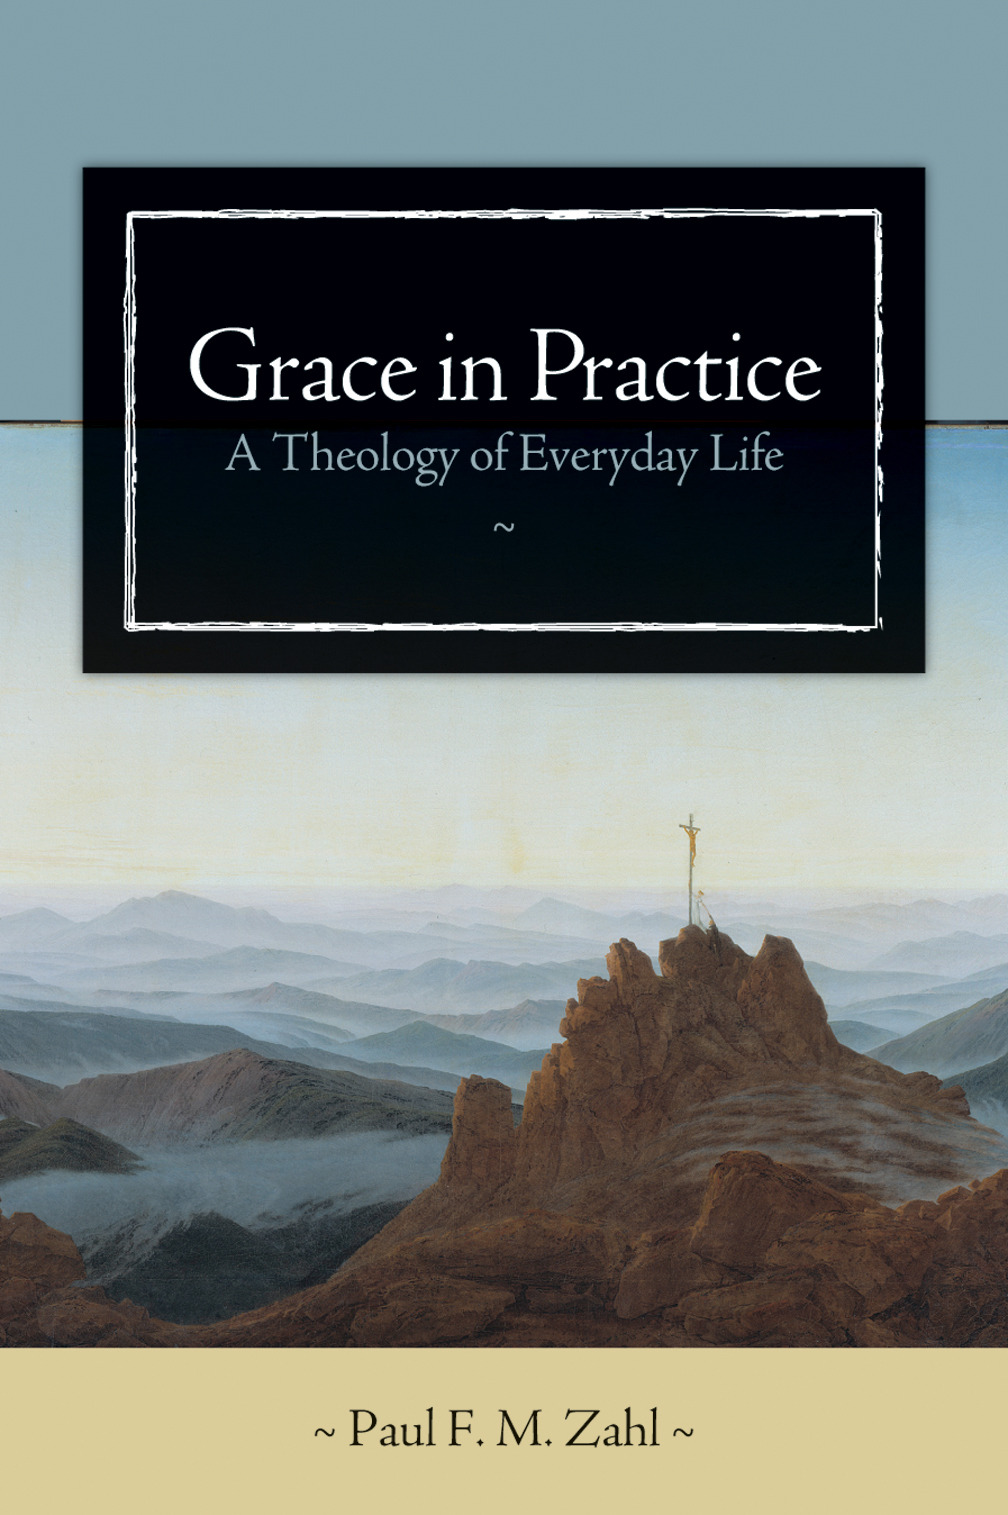 "Grace in Practice: A Theology of Everyday Life, by Paul F.M. Zahl, 2007. This is the most aggravating book I have read this year.  It is also the most profound book I have read all year.  At the Mockingbird Conference in September, people kept telling me about this book and how it convicts and challenges, but, I admit, I was skeptical.  Not anymore.  I feel like I got into a violent bar fight with myself; broken bottles, fists, slobbery blood and all.  I have not felt that way since I saw Modest Mouse in concert at Sasquatch in 2011.  Isaac Brock's affinity for Bukowski, Nietzsche, and everything nihilistic and his gradual drunkenness giving an edge to his venomous lyrics as the two hour concert proceeded, made for a painful but highly effective concert.  This was an example of the world without grace and I felt bloodied.  This book, however, was attempting to show what grace looks like in everyday life and, again, I feel bloodied.  Maybe Flannery O'Connor was more right than even I could guess, that violence precedes and follows the grace of God. Paul Zahl, I have decided, is not out to agree with people's systems of thought.  He is out to unsettle them from their very foundations.  The first third of the book, or so, is the theological foundations for a ""theology of everyday life"" or a practical theology of grace.  He starts out with four pillars of his theology: the human condition (original sin, total depravity and the un-free will), Soteriology, Christology and the being of God.  Setting this down firmly, but with great wit, he then moves on to three areas of everyday life and how grace invades those areas: family, society and church.  I said this was an aggravating book in part because elements of what he says are edgy and are on the surface going against my own viewpoints.  However, as he continues, its hard to not, at least, see where he is coming from and recognize the direction of his critique.  In the first part of the book (the theological foundations), I did take offense to his naming of elements of the book of Amos as Semi-Pelagian.  If there is a single book of the Bible that works me over more and more, it is Amos.  And, though, I am not sure that, in the end, I agree with this accusation, I could see where he was coming from.  That is the magic of Paul Zahl.  He will say something to knock you out of your self-made complacency to think about things in another direction.  Doesn't mean you will agree with everything, but you will, at least, agree with why he makes those claims.  In the largest portion of the book, he drops one bomb after another, reshaping and rethinking relationships with people, with the state and with the church under the realm of grace.  If you are not in a wrestling match with yourself during the majority of this book, then I am convinced you may be too far gone to be reached.  The most bloodying part of the book for me was Zahl's view of the church, or a Christian's ecclesiology.  Part of me was thinking that his critiques were just a product of post-modern critiques of institutions that is so cliche in the broader realm of Christendom.  However, by the time you have made it to that point and learned the theological foundations, learned how it works in the family and society, it is hard to leave that critique to stand on its own.  A lot of what he says about the church is true, too true.  And though I am still giving myself right hooks and cutting myself with a broken Shiner Bock bottle over that last part of the book (and various other elements of the book, as well), I find more and more validity to his concerns and his critiques.  Once again, will I ultimately agree?  Maybe, maybe not.  But he delivers the blows that need to be delivered.  That being said, there were parts of the book that were like, ""Finally, someone sees it the way I do.""  Especially when it came to grace in society.  I have already come to a position that is largely pacifist and pro-life in all instances (as in death penalty, self-defense, etc., not just abortion).  However, Zahl even unsettled me there too.  He checked the idealistic nature of my pacifism.  His understanding that idealism usually accompanies a high view of human anthropology (or, high view of the human condition) is largely true.  The ""If I am a pacifist in my life, and others are too, then the world will be better and will progress toward a greater good"" argument is a misunderstanding of the world and humans.  Living in grace means failure, suffering, loss and losing the battle most of the time, if not all of the time!  Being a pacifist should not give us high hopes of progress and human empowerment, but, instead, should prepare us to lose, so that God can then work in our powerlessness.  All of this, the challenges and the agreements of this book are like the scene in The Dark Knight Rises when Bane breaks Batman's back and Batman has to learn how to walk again.  It is the same thing for me in reading this book.  Paul Zahl has broken my back, and started breaking my control, my will (though that will be a life-long affair), so that I might see my life and my life in relation to others through the lens of grace instead of the law.  Grace engenders what the Law couldn't.  The Law only multiplied sins, but the grace of God in the death and resurrection of Jesus Christ, brought about the obedience to the Law that the Law couldn't produce.  Just like Abraham believed in the promises of God, first, and then was obedient, we, too, need to allow grace to break our backs, so that we may start to be obedient to God and his will.  O'Connor was right when, time and time again, she proclaimed that it took violence to break our wills so that God could then do his will in us, which, too, was violence in the mortifying of the flesh; the justification and sanctification of his people. Kudos to Paul Zahl for making me have the internal, bloody, conflict with myself.  At the end of the day, whoever wins, I still lose.  And I thank God for that."